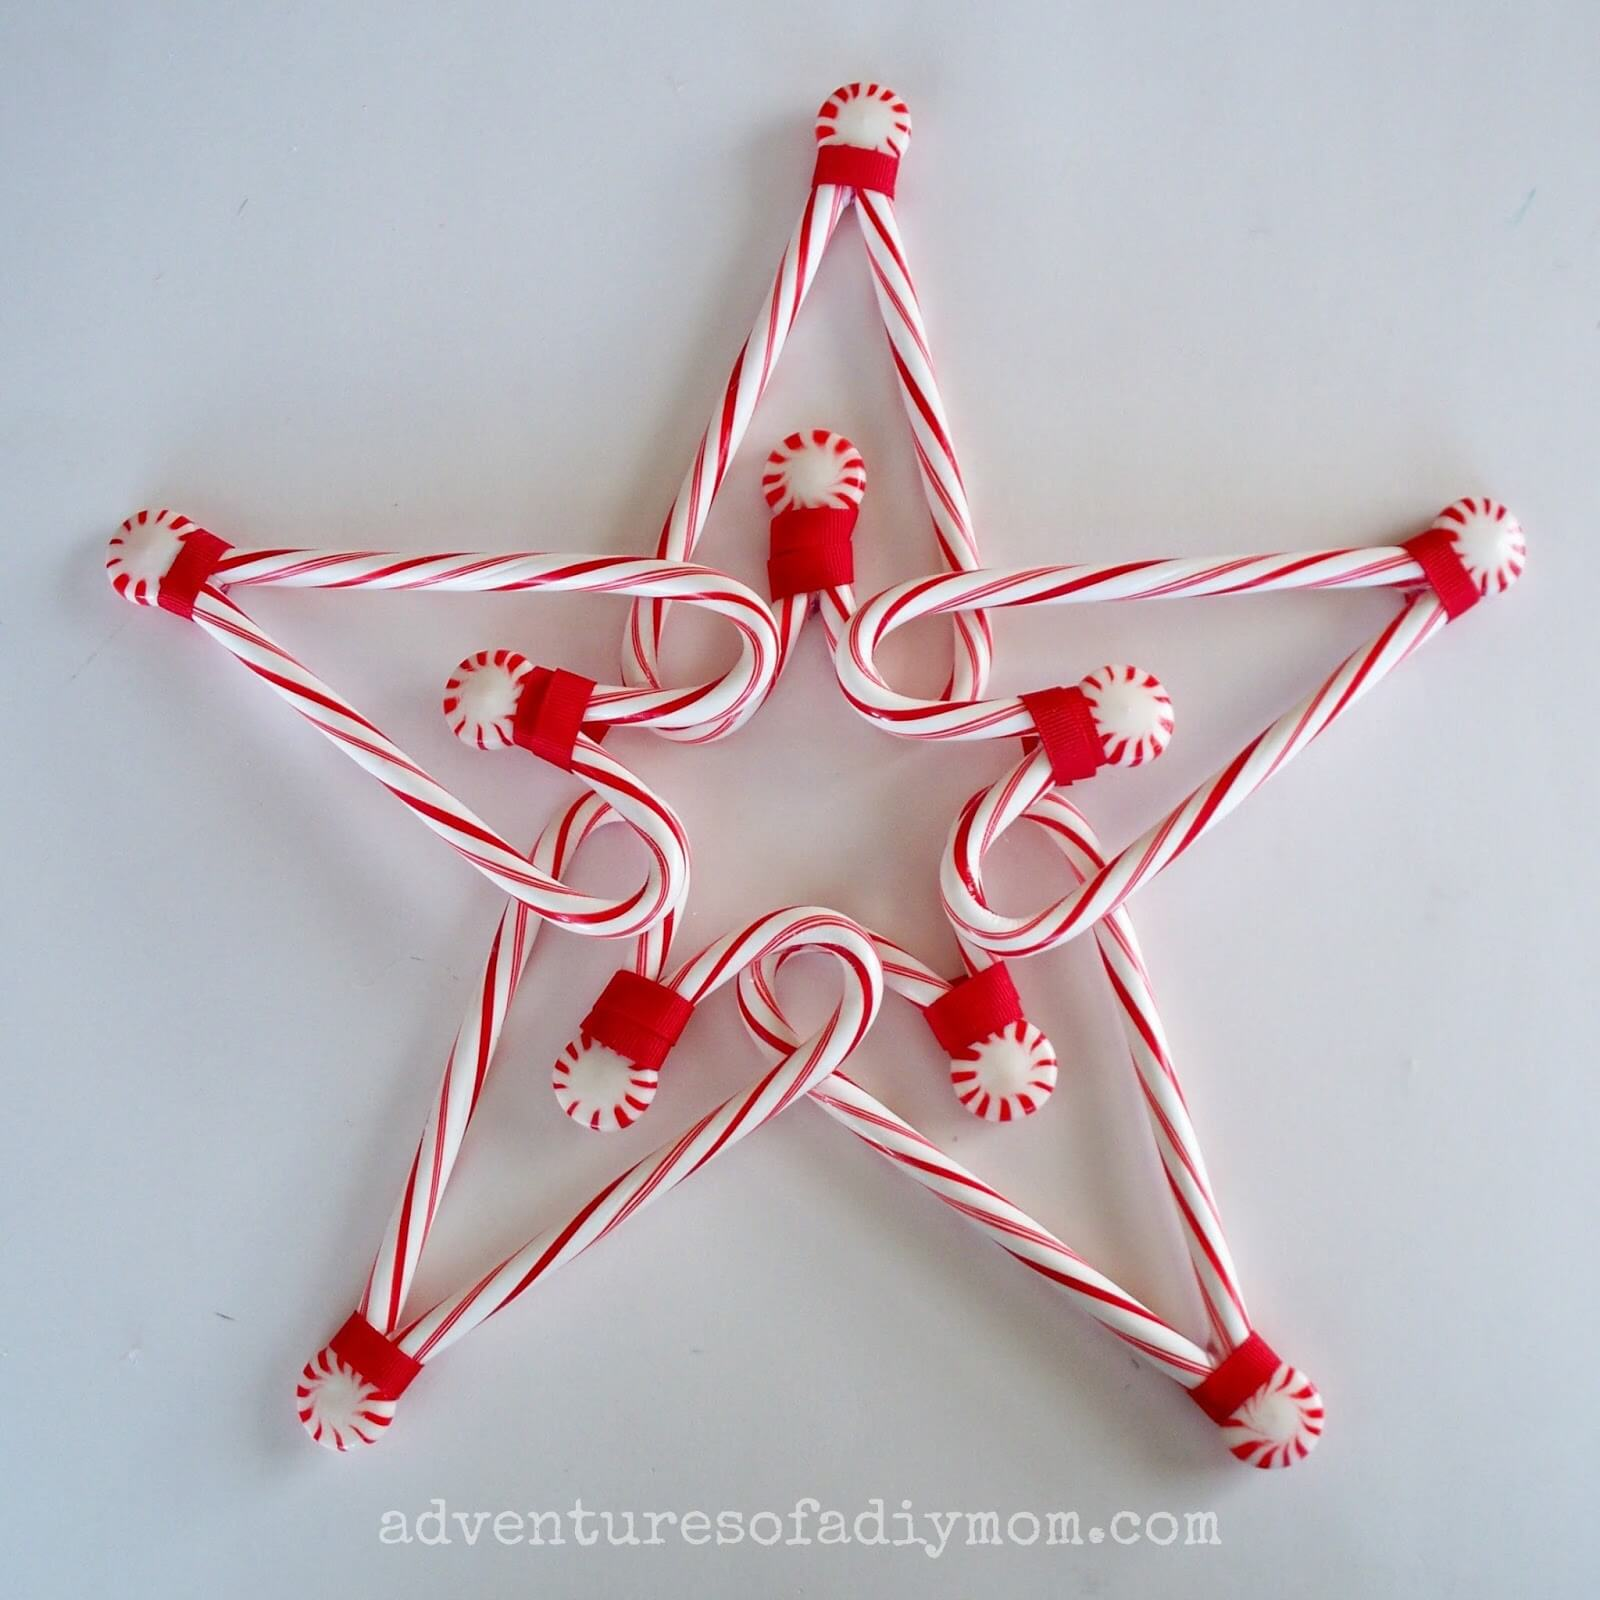 Get the kids involved in making this great DIY candy cane tree topper!